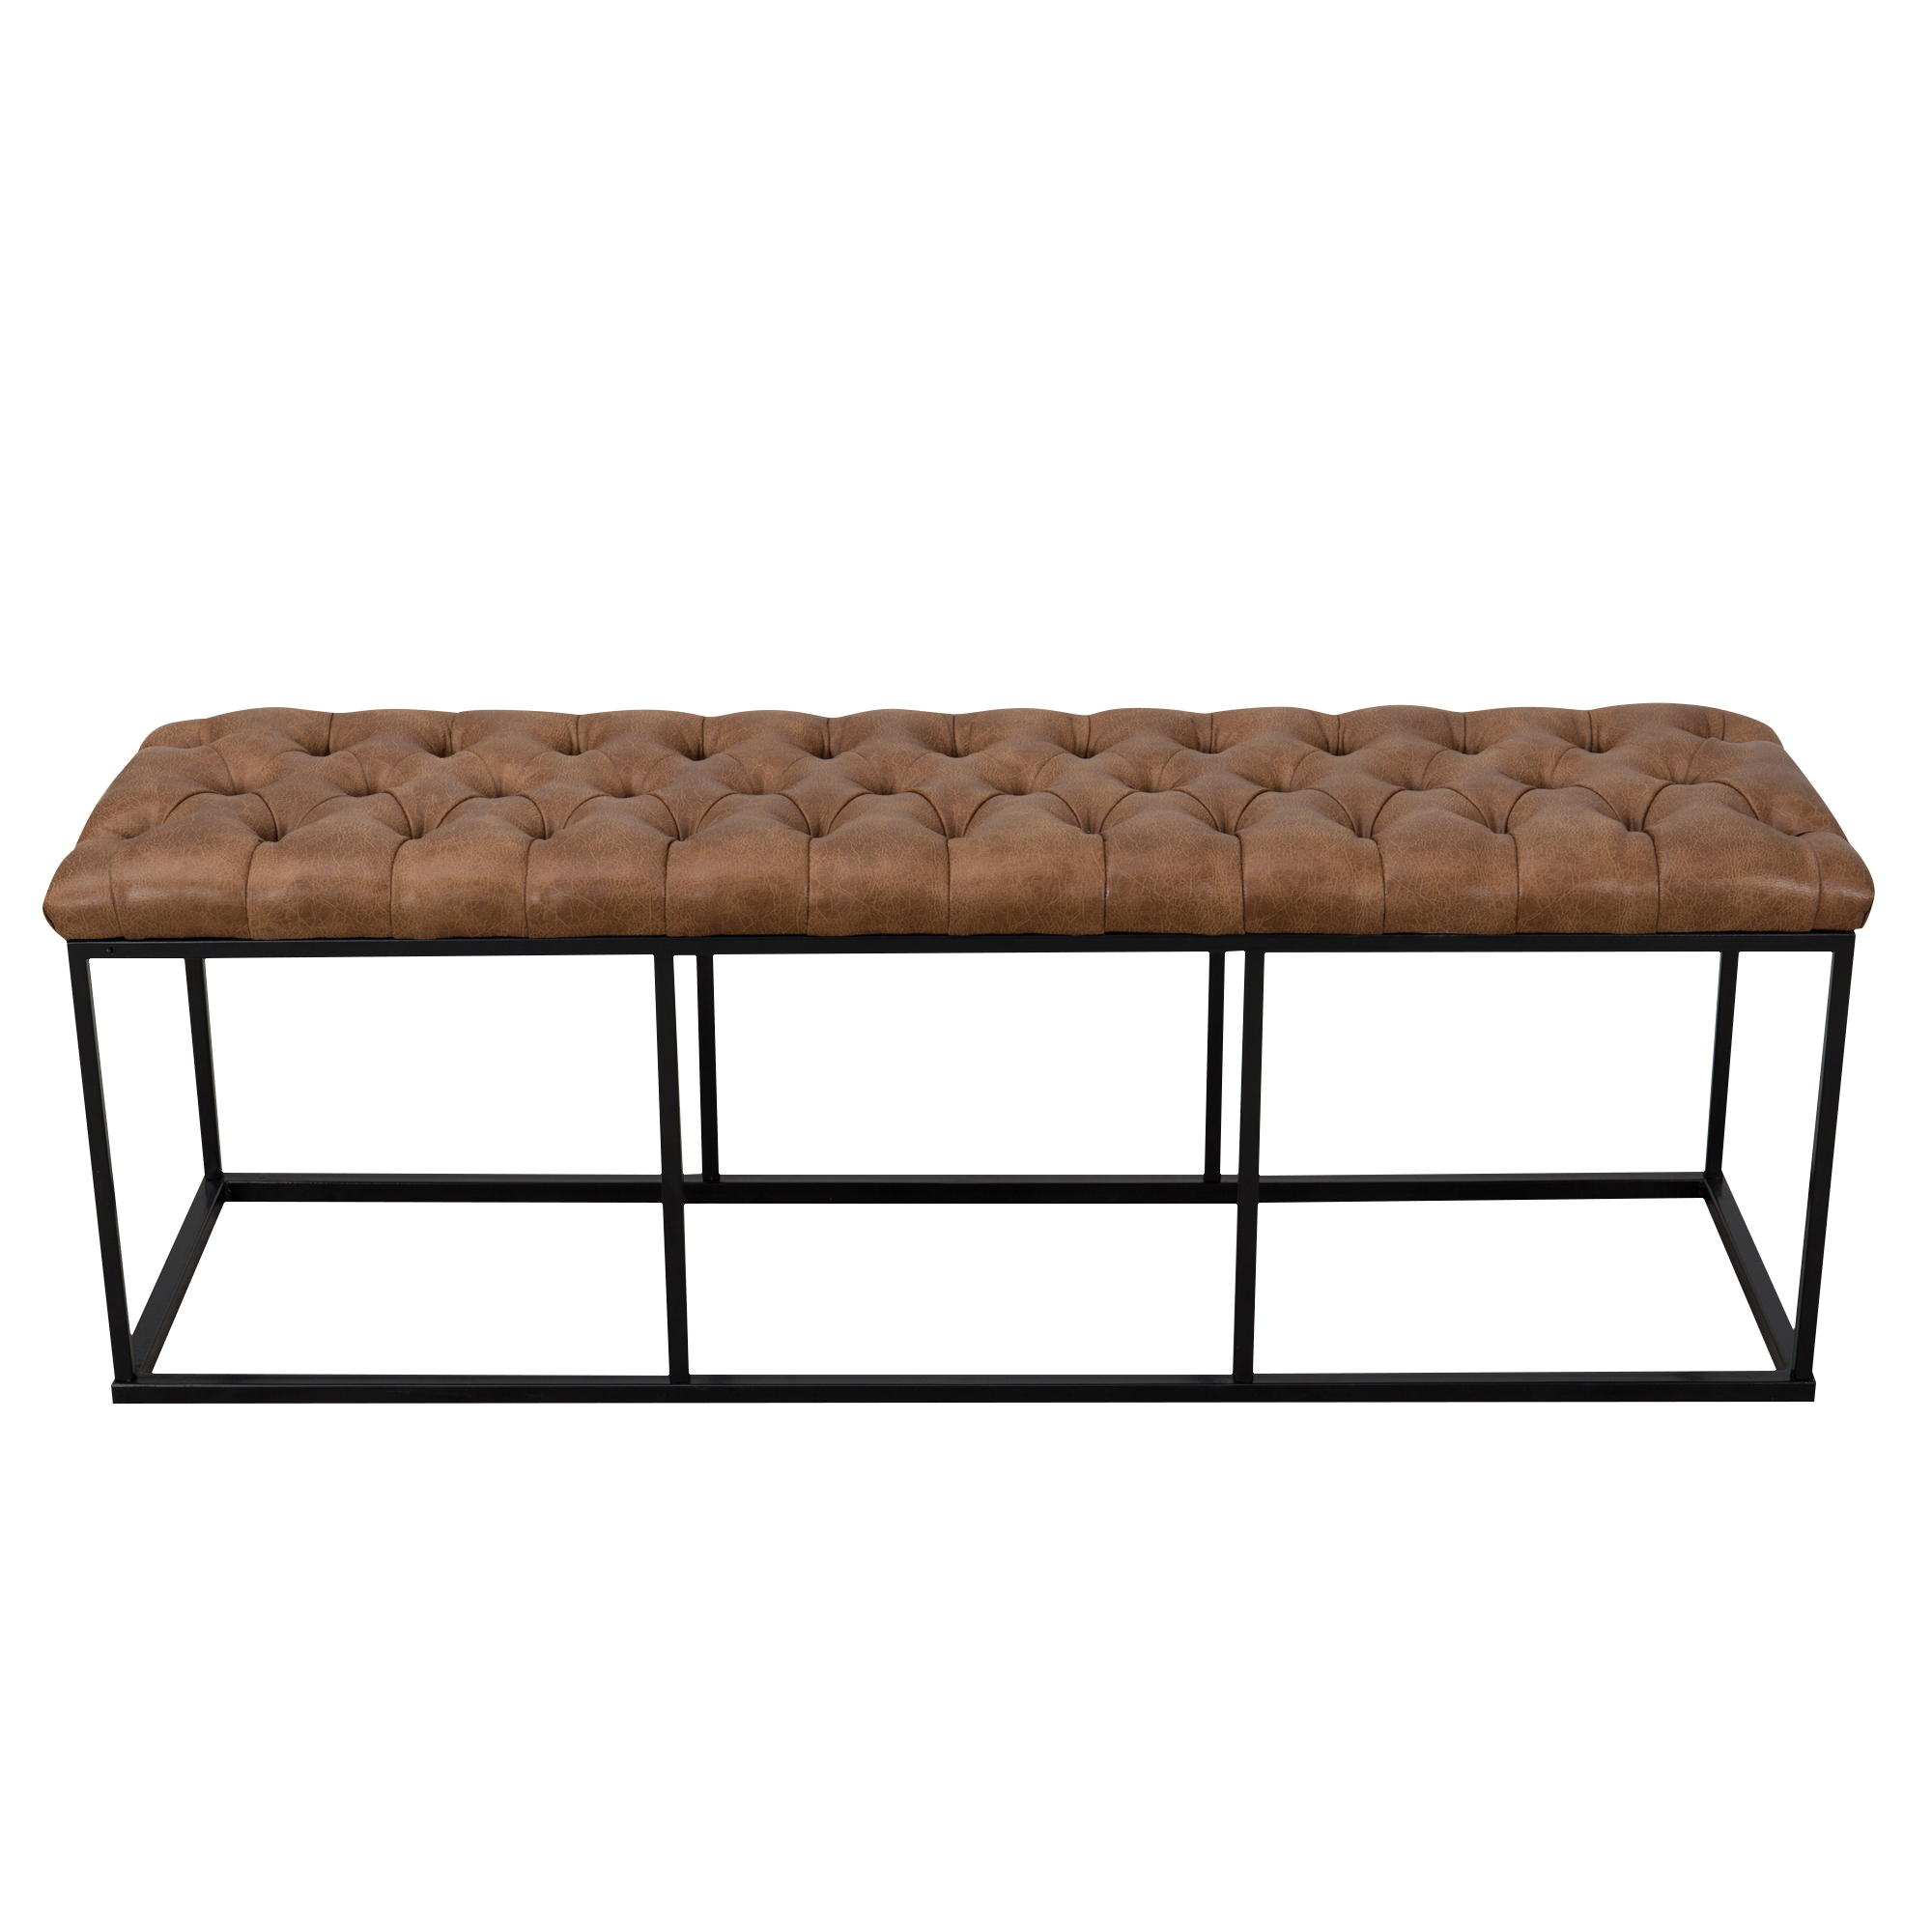 HomePop Downing Large Decorative Bench, Multiple Colors